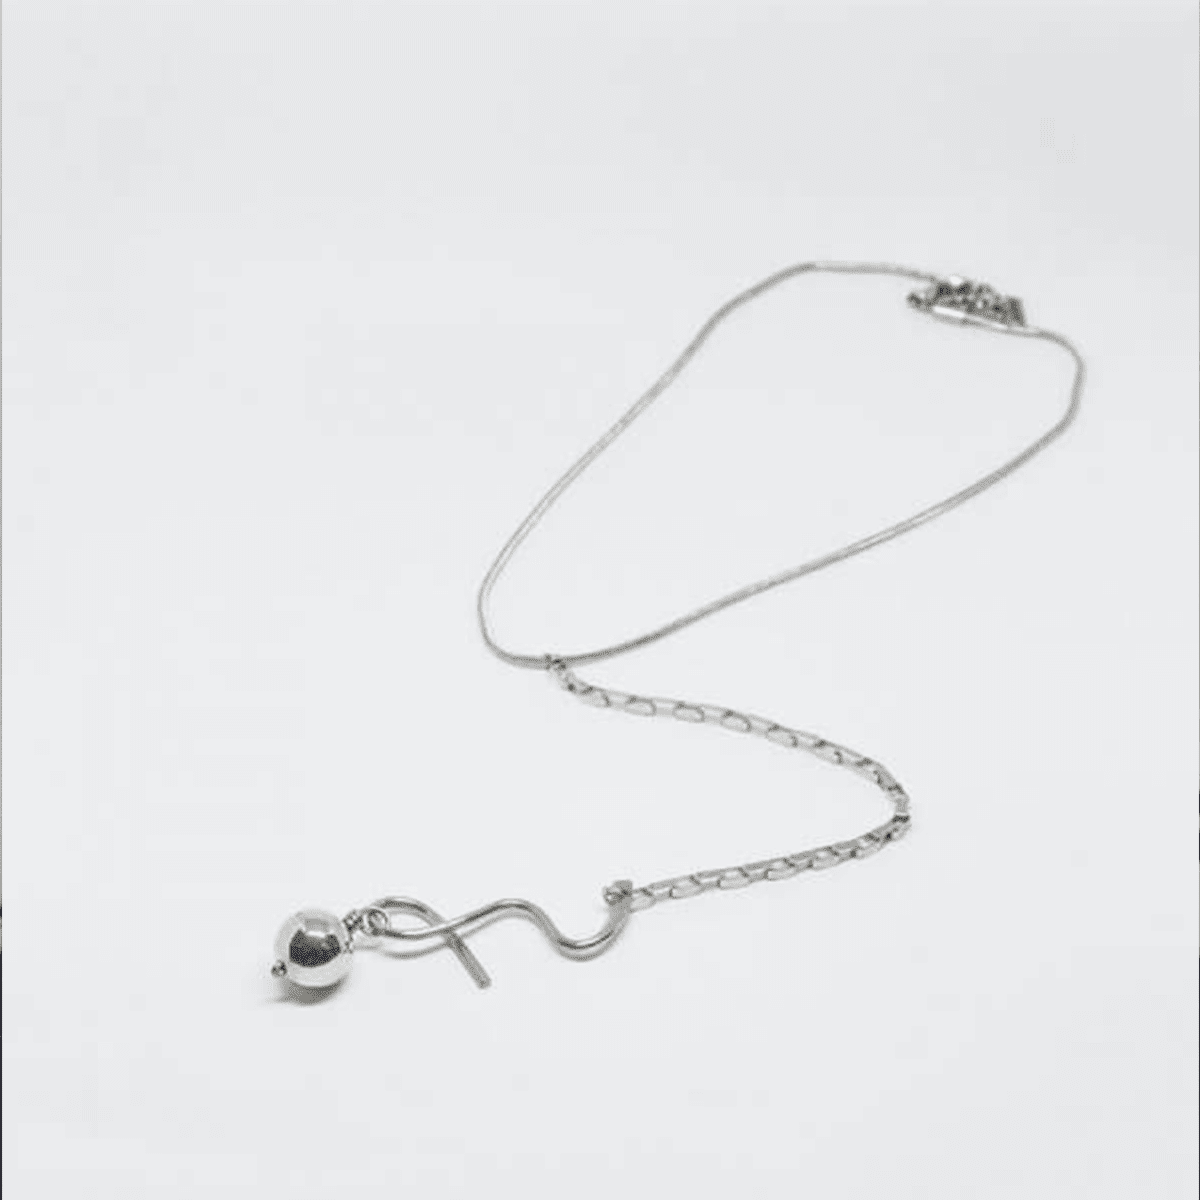 Long Vertical Pendant Silver Swing Necklace